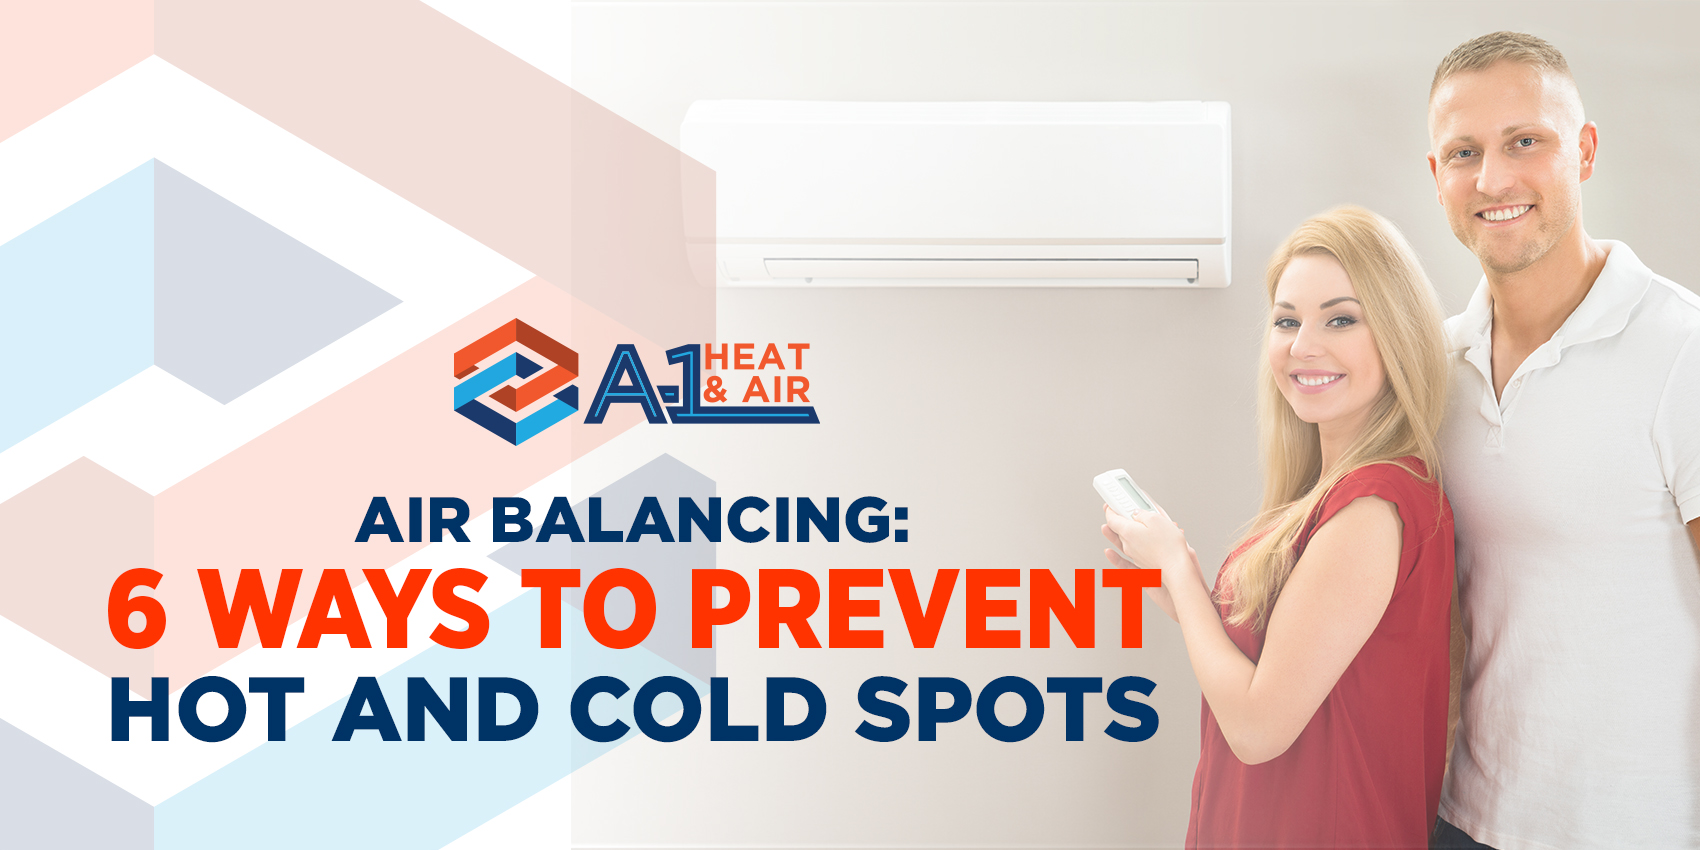 Air Balancing: 6 Ways to Prevent Hot and Cold Spots